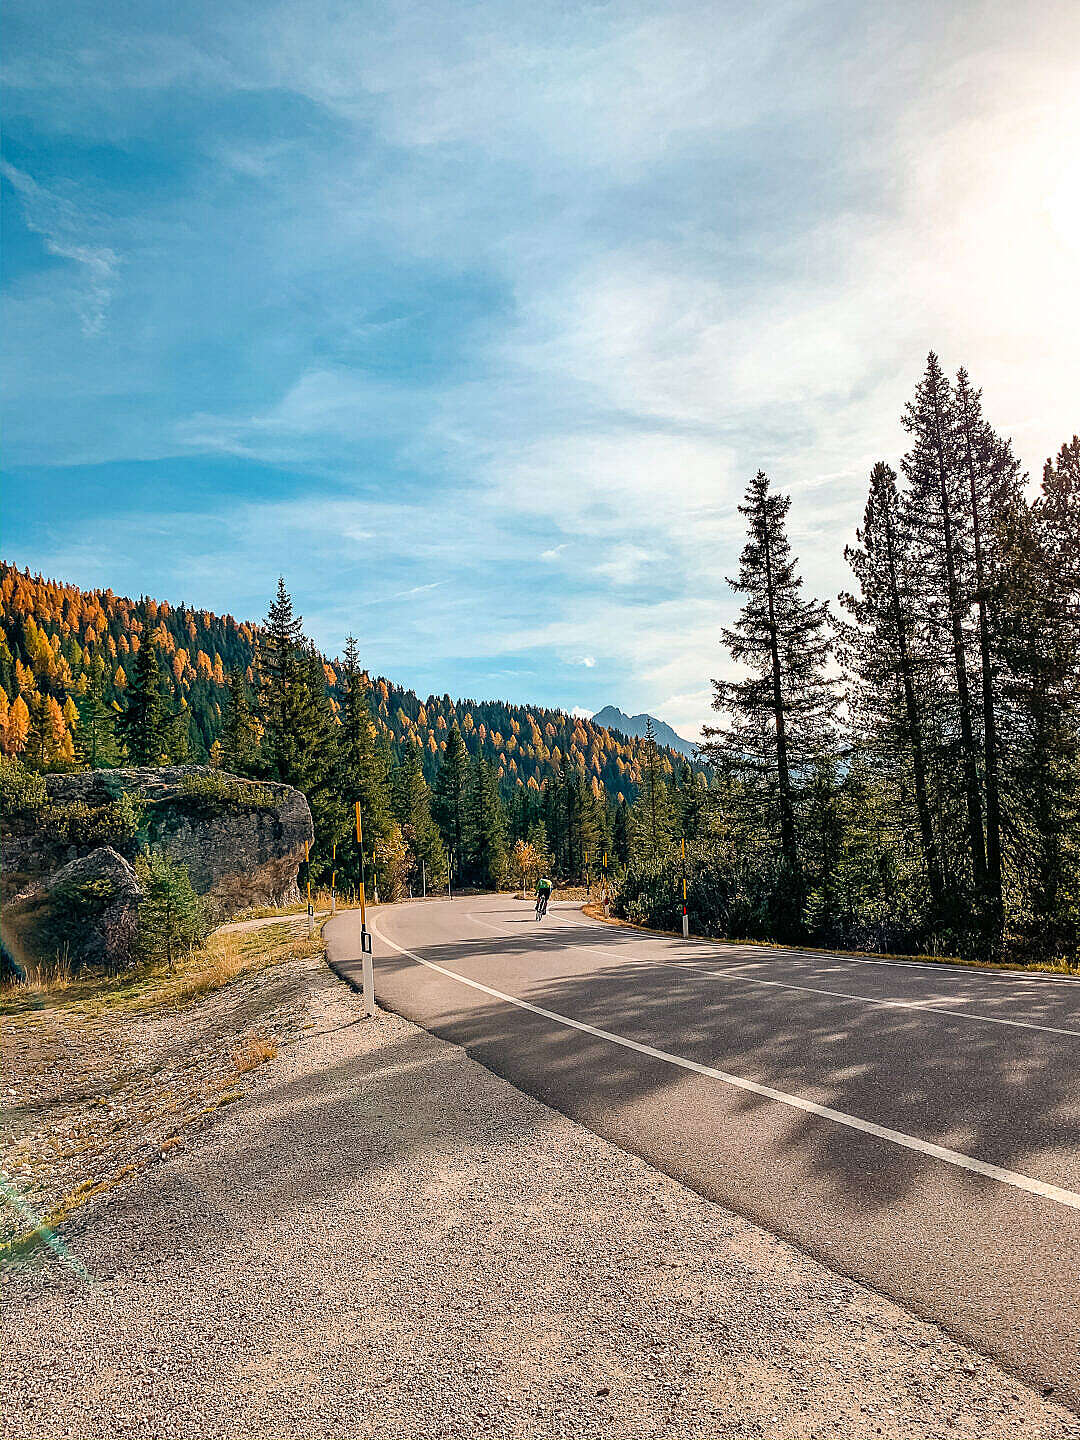 Download Random Road with a Cyclist in Dolomites, Italy FREE Stock Photo